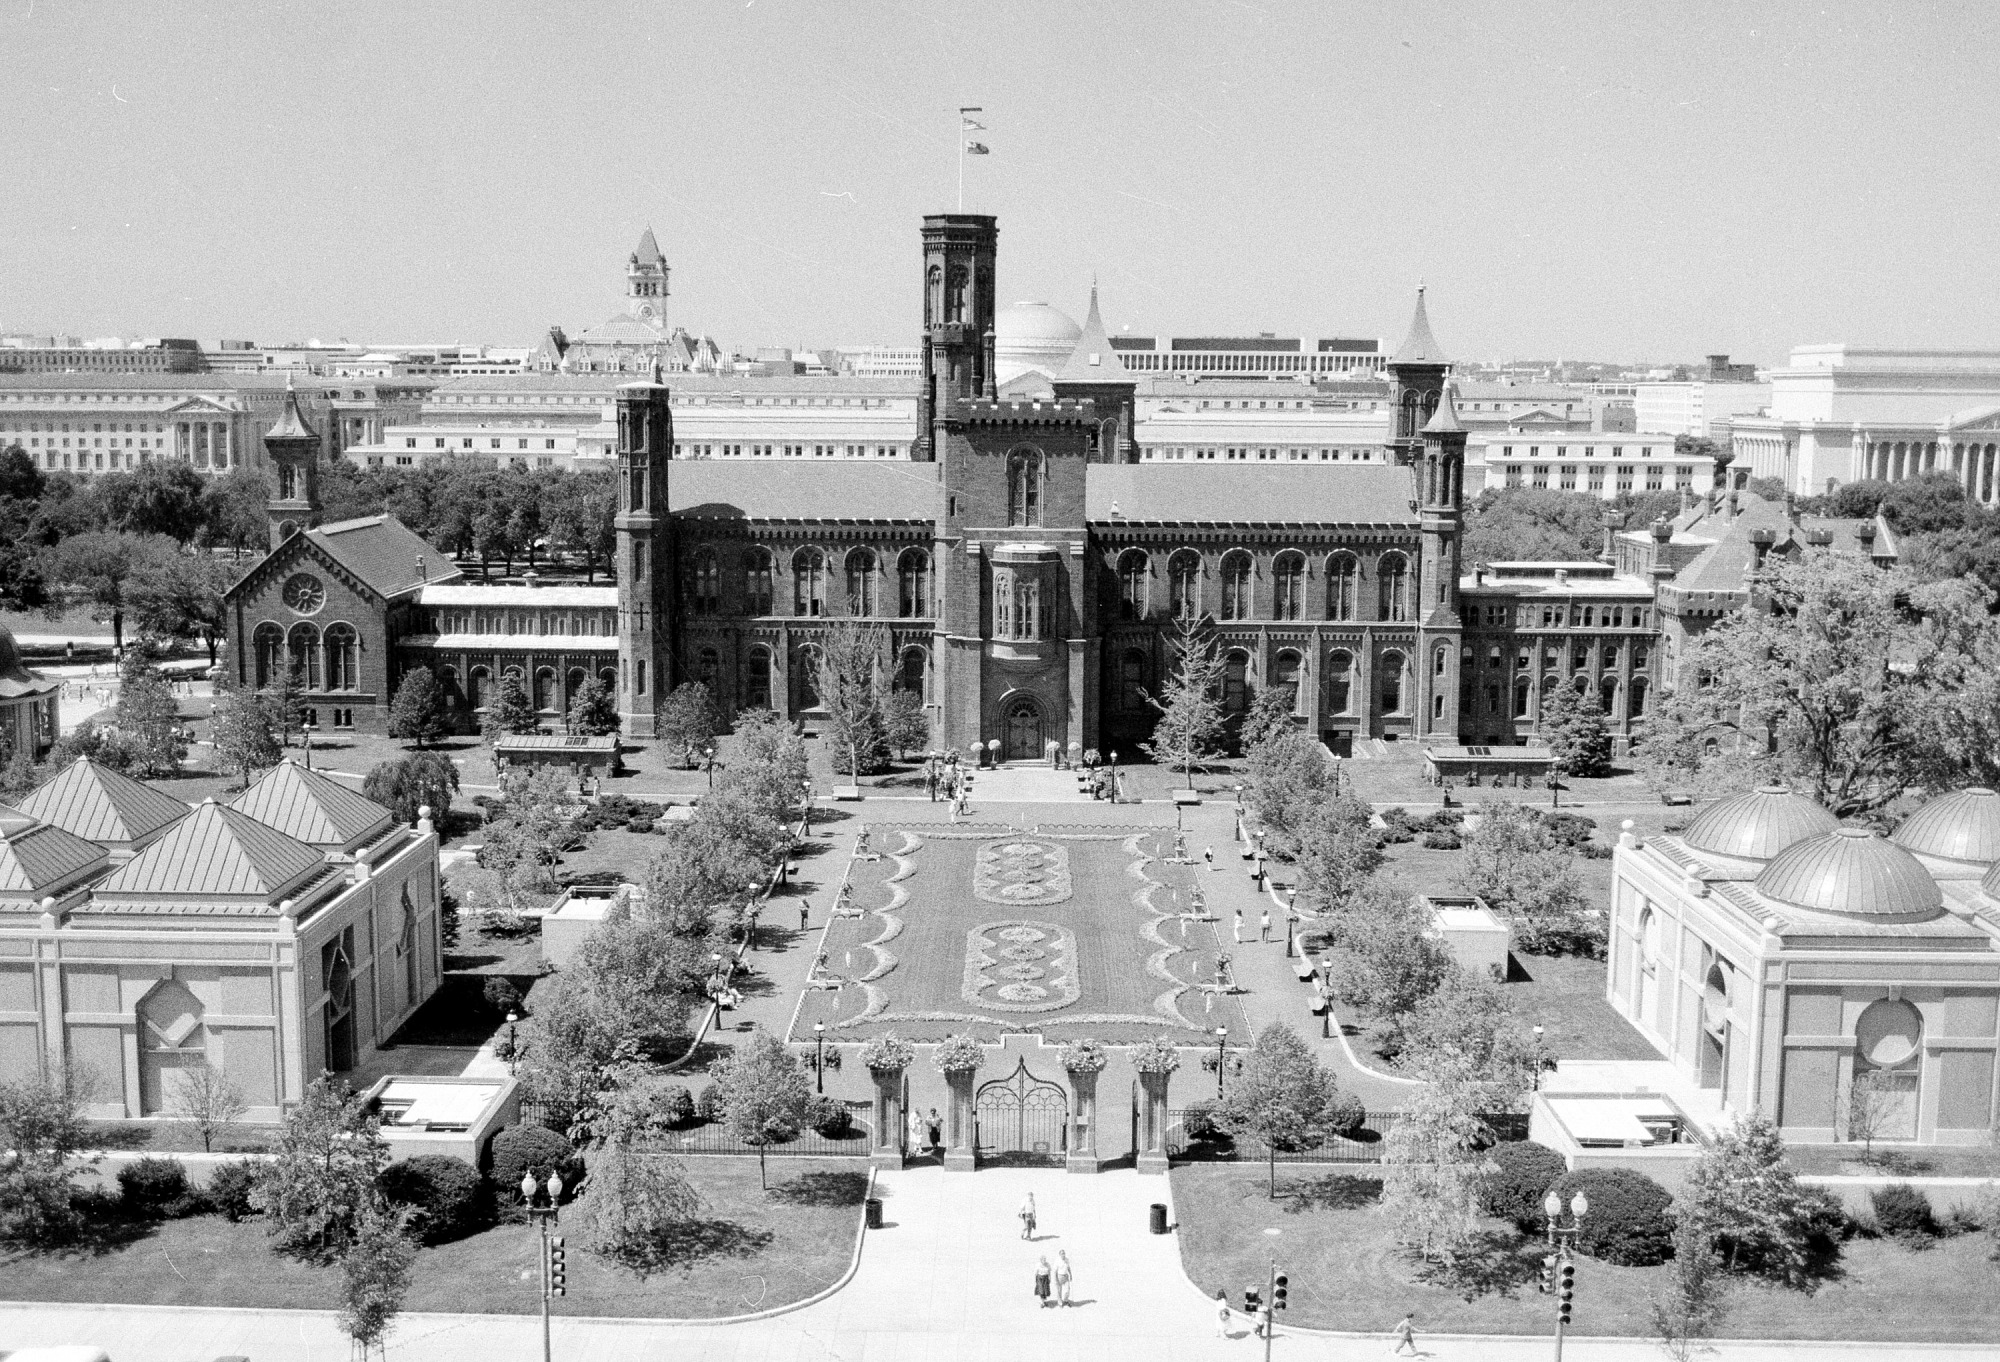 View of Quadrangle from Top Forrestal Building